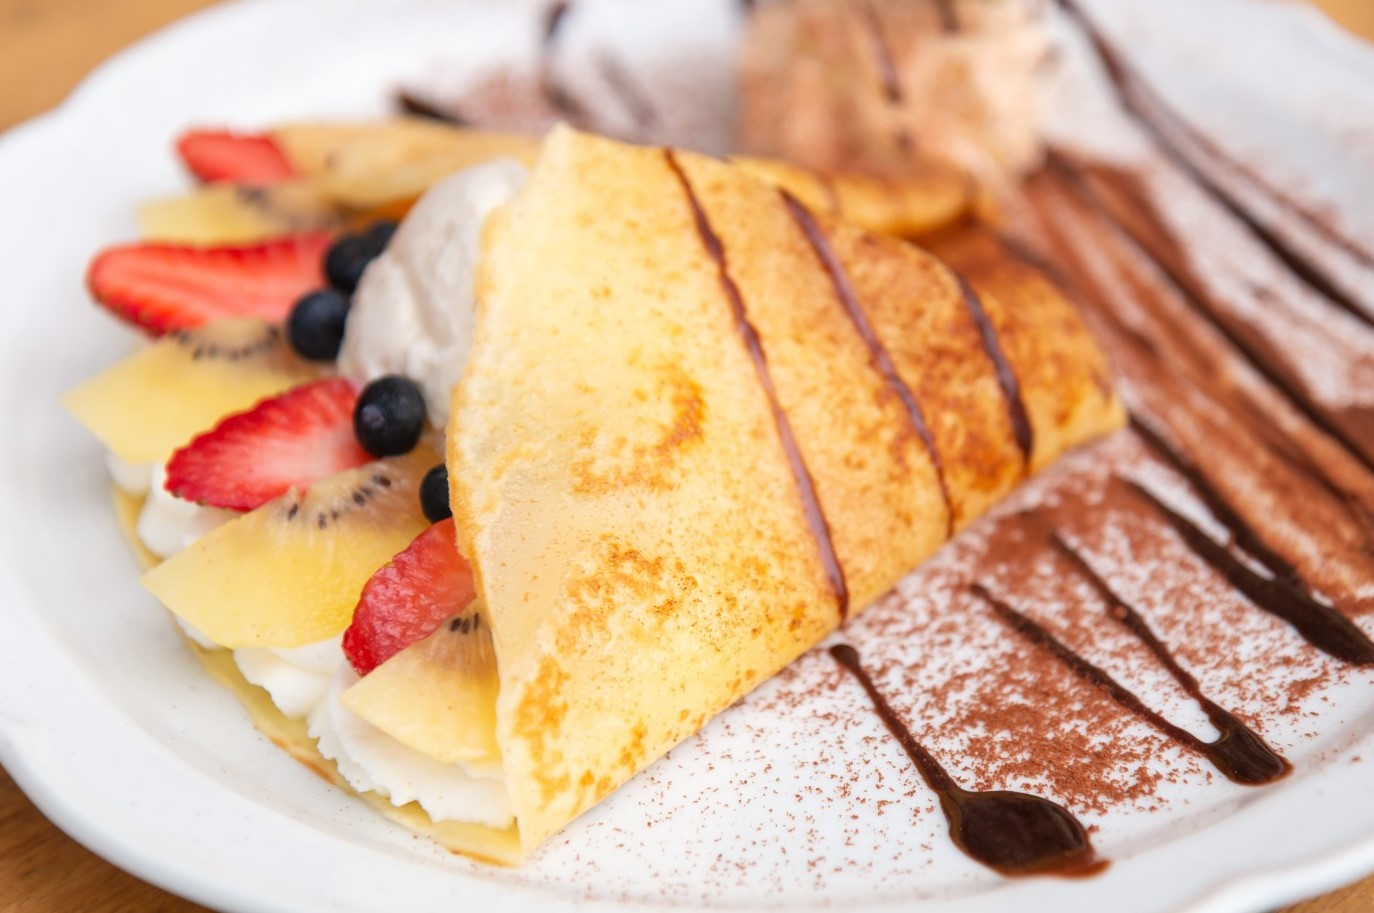 Crepes from pancake mix